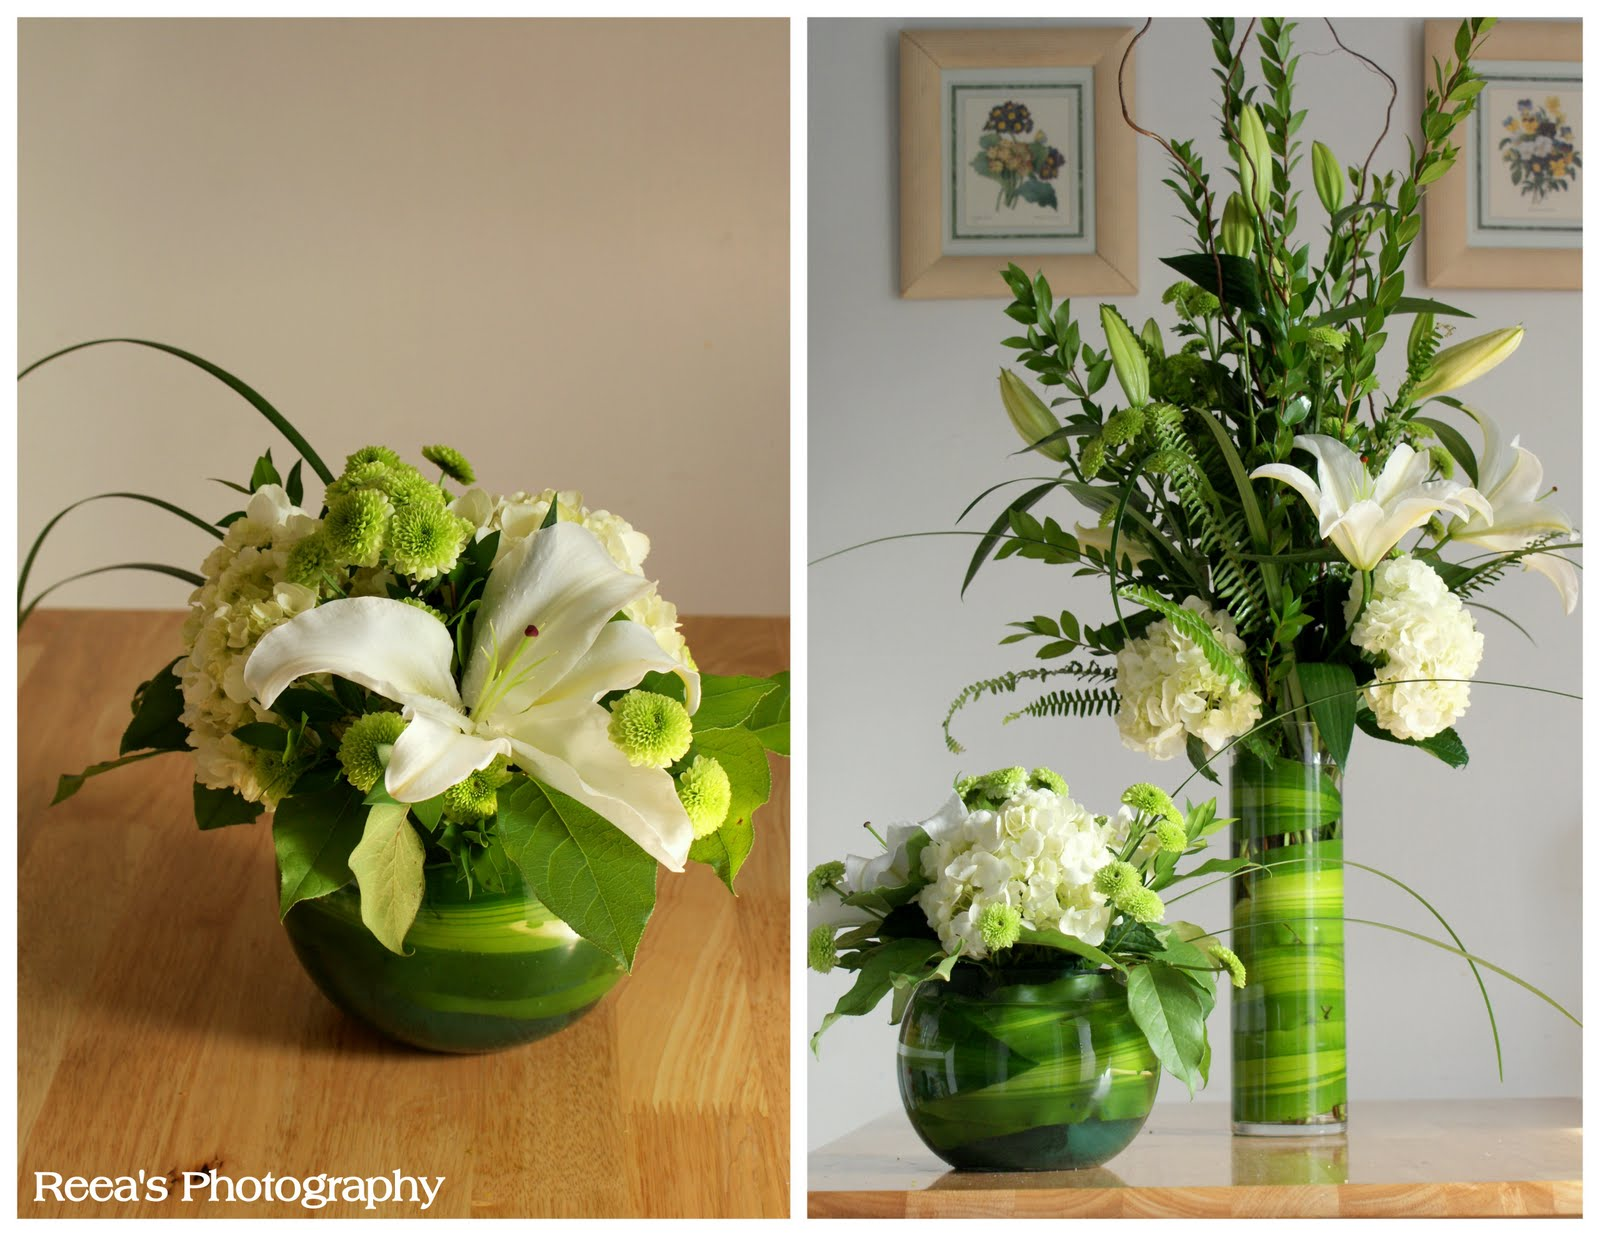 Floral arrangements in tall vases vases sale - Flower arrangements for vases ...